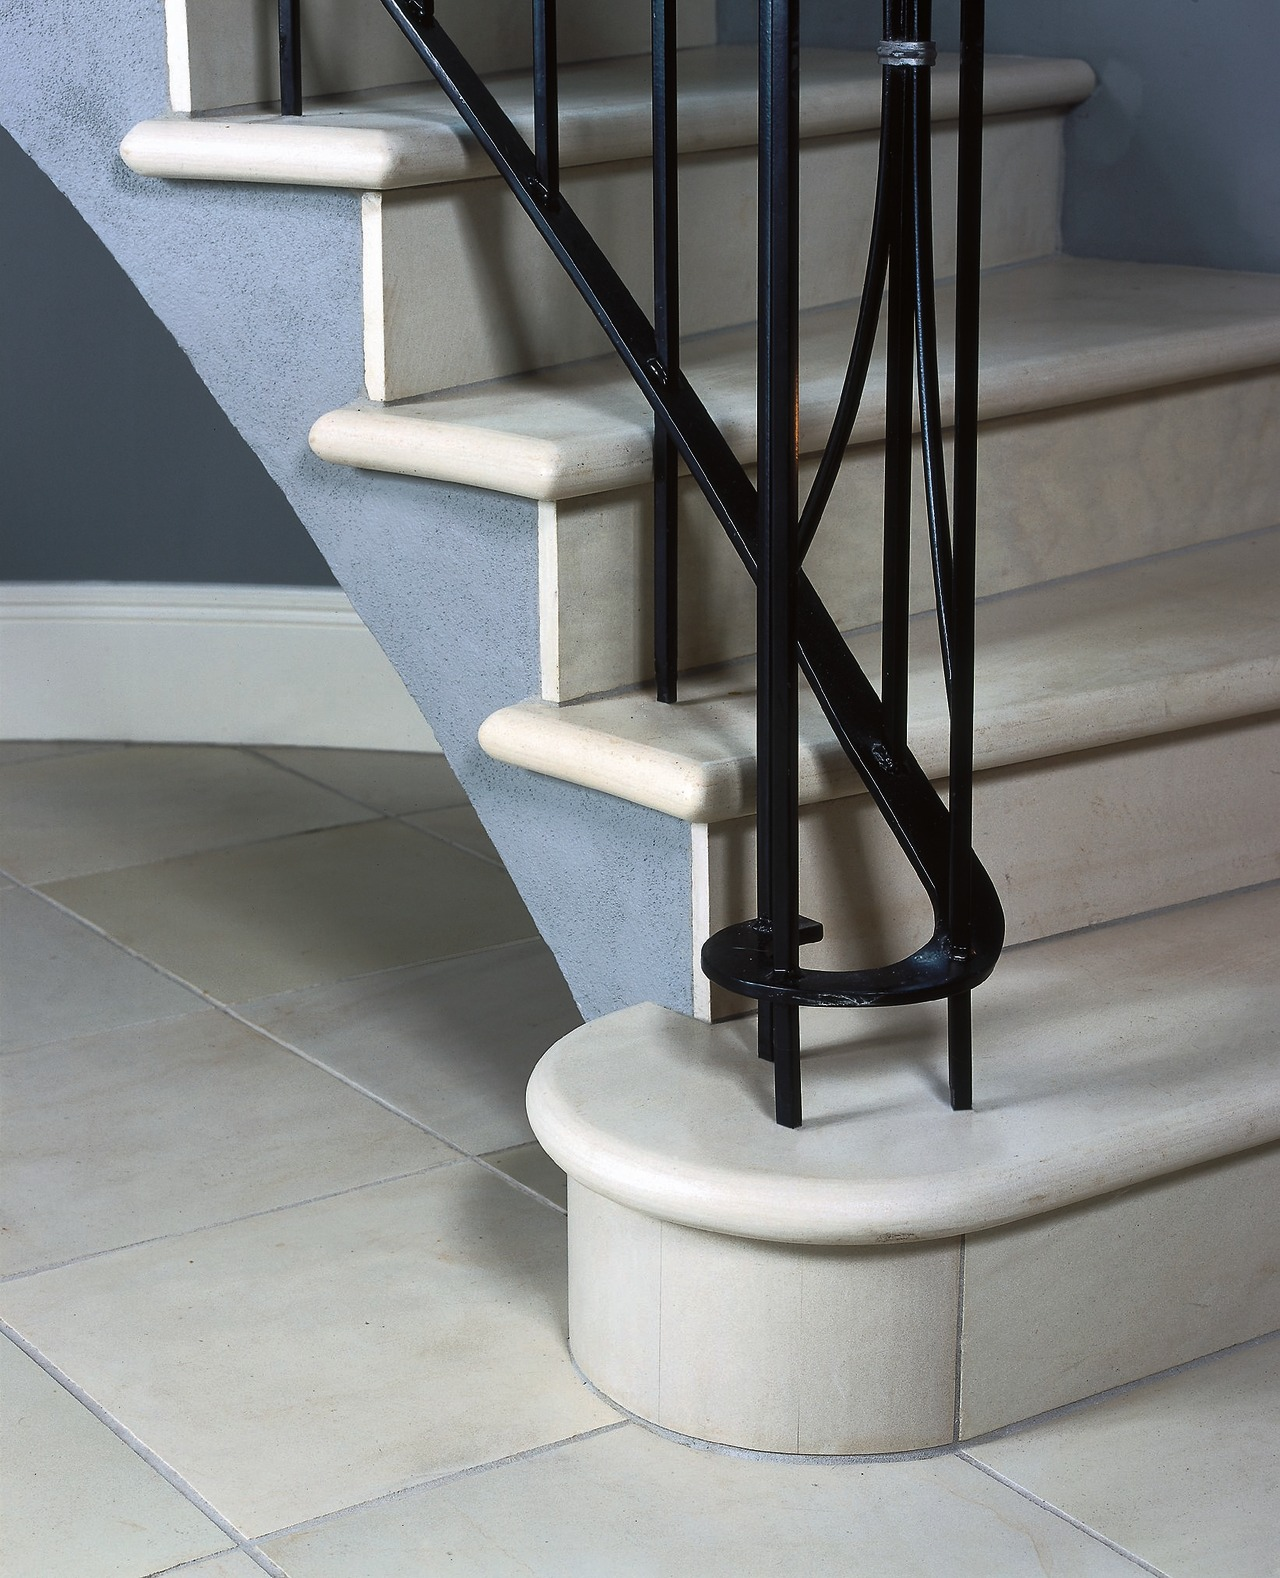 stairway with tiled surface floor, handrail, product design, stairs, structure, gray